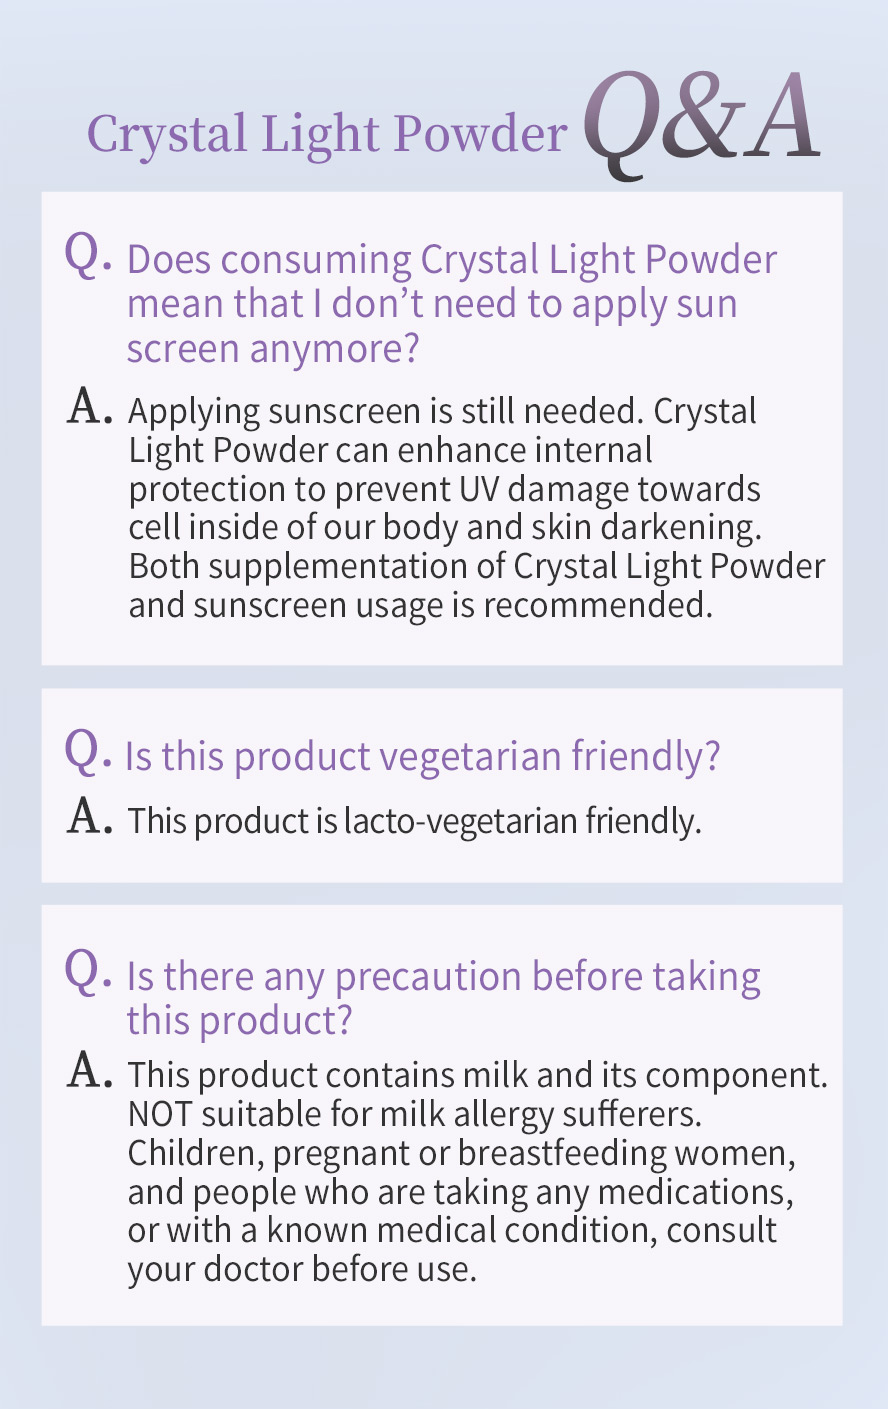 BHK's Crystal Light Powder supplementation and sunscreen appliance is your answer to bright and even skintone